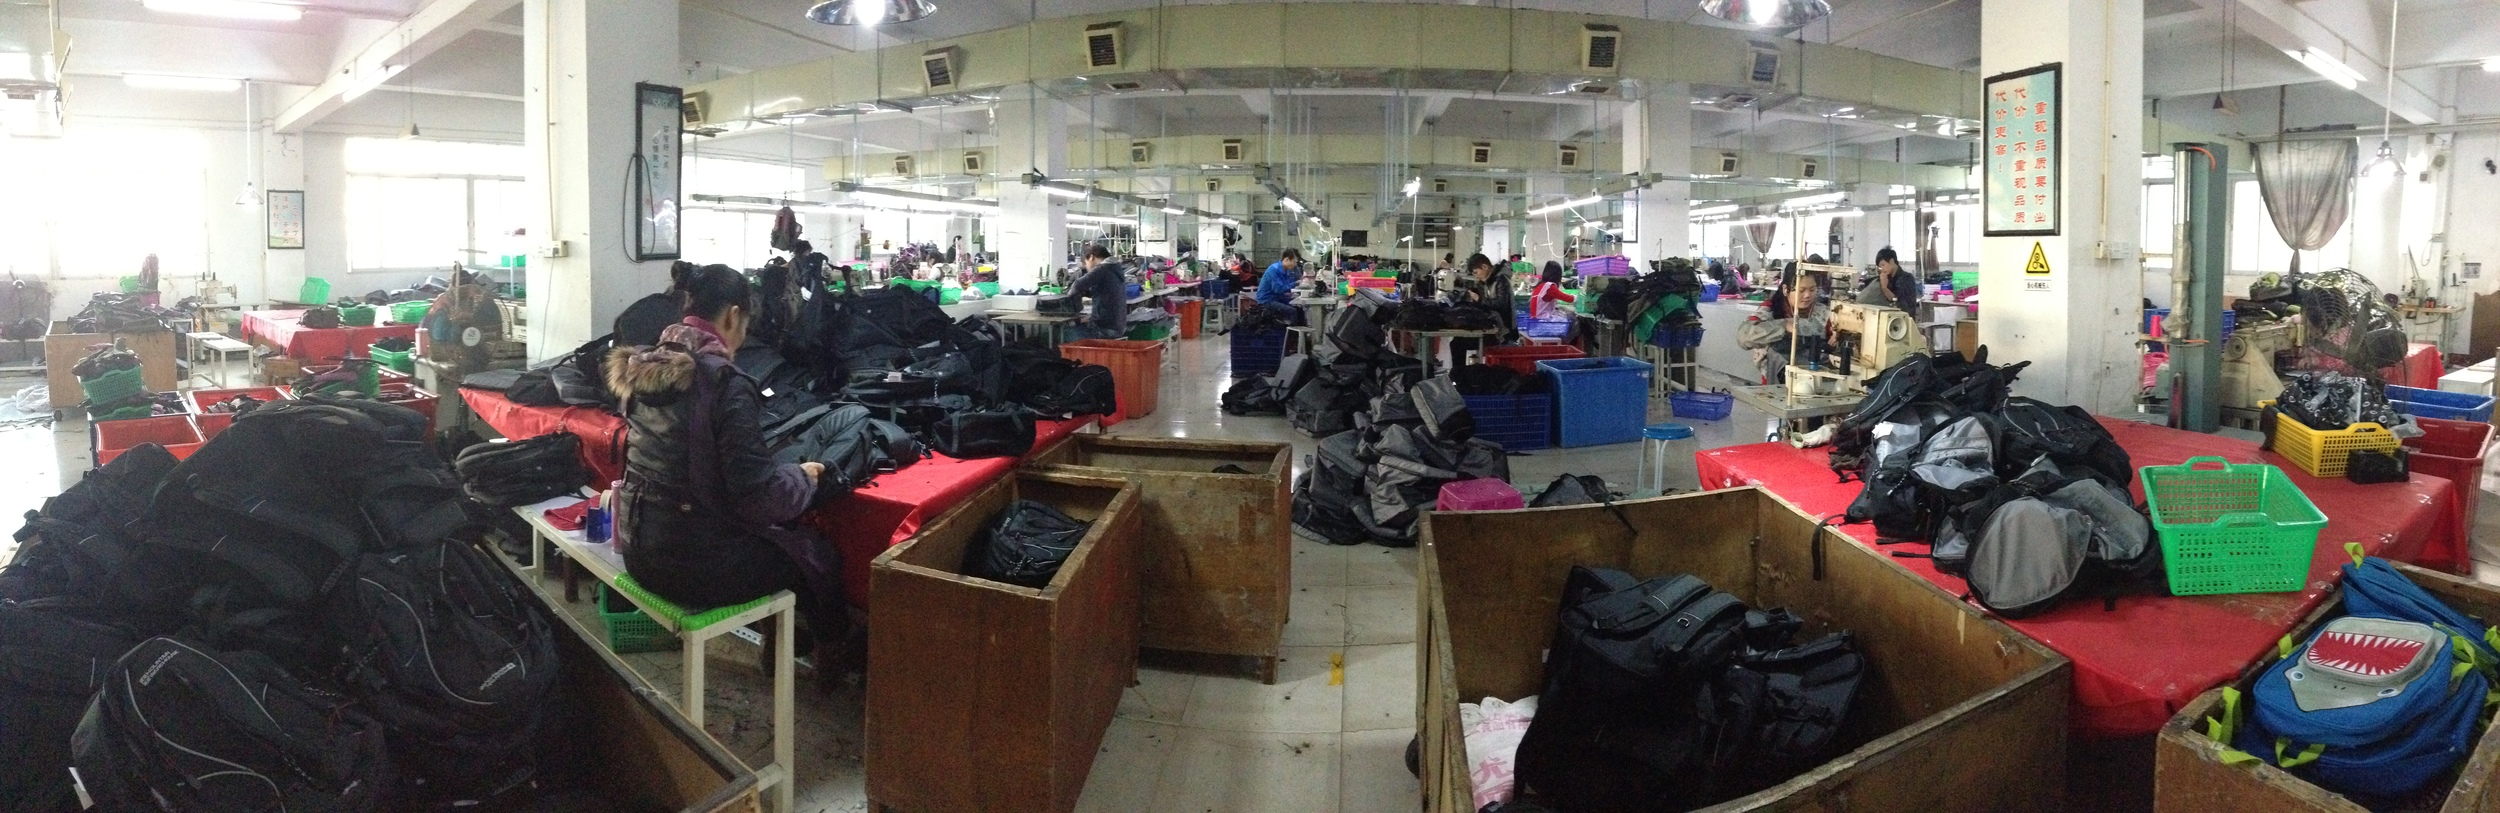 Production line for bags. Textiles factory China December 2014